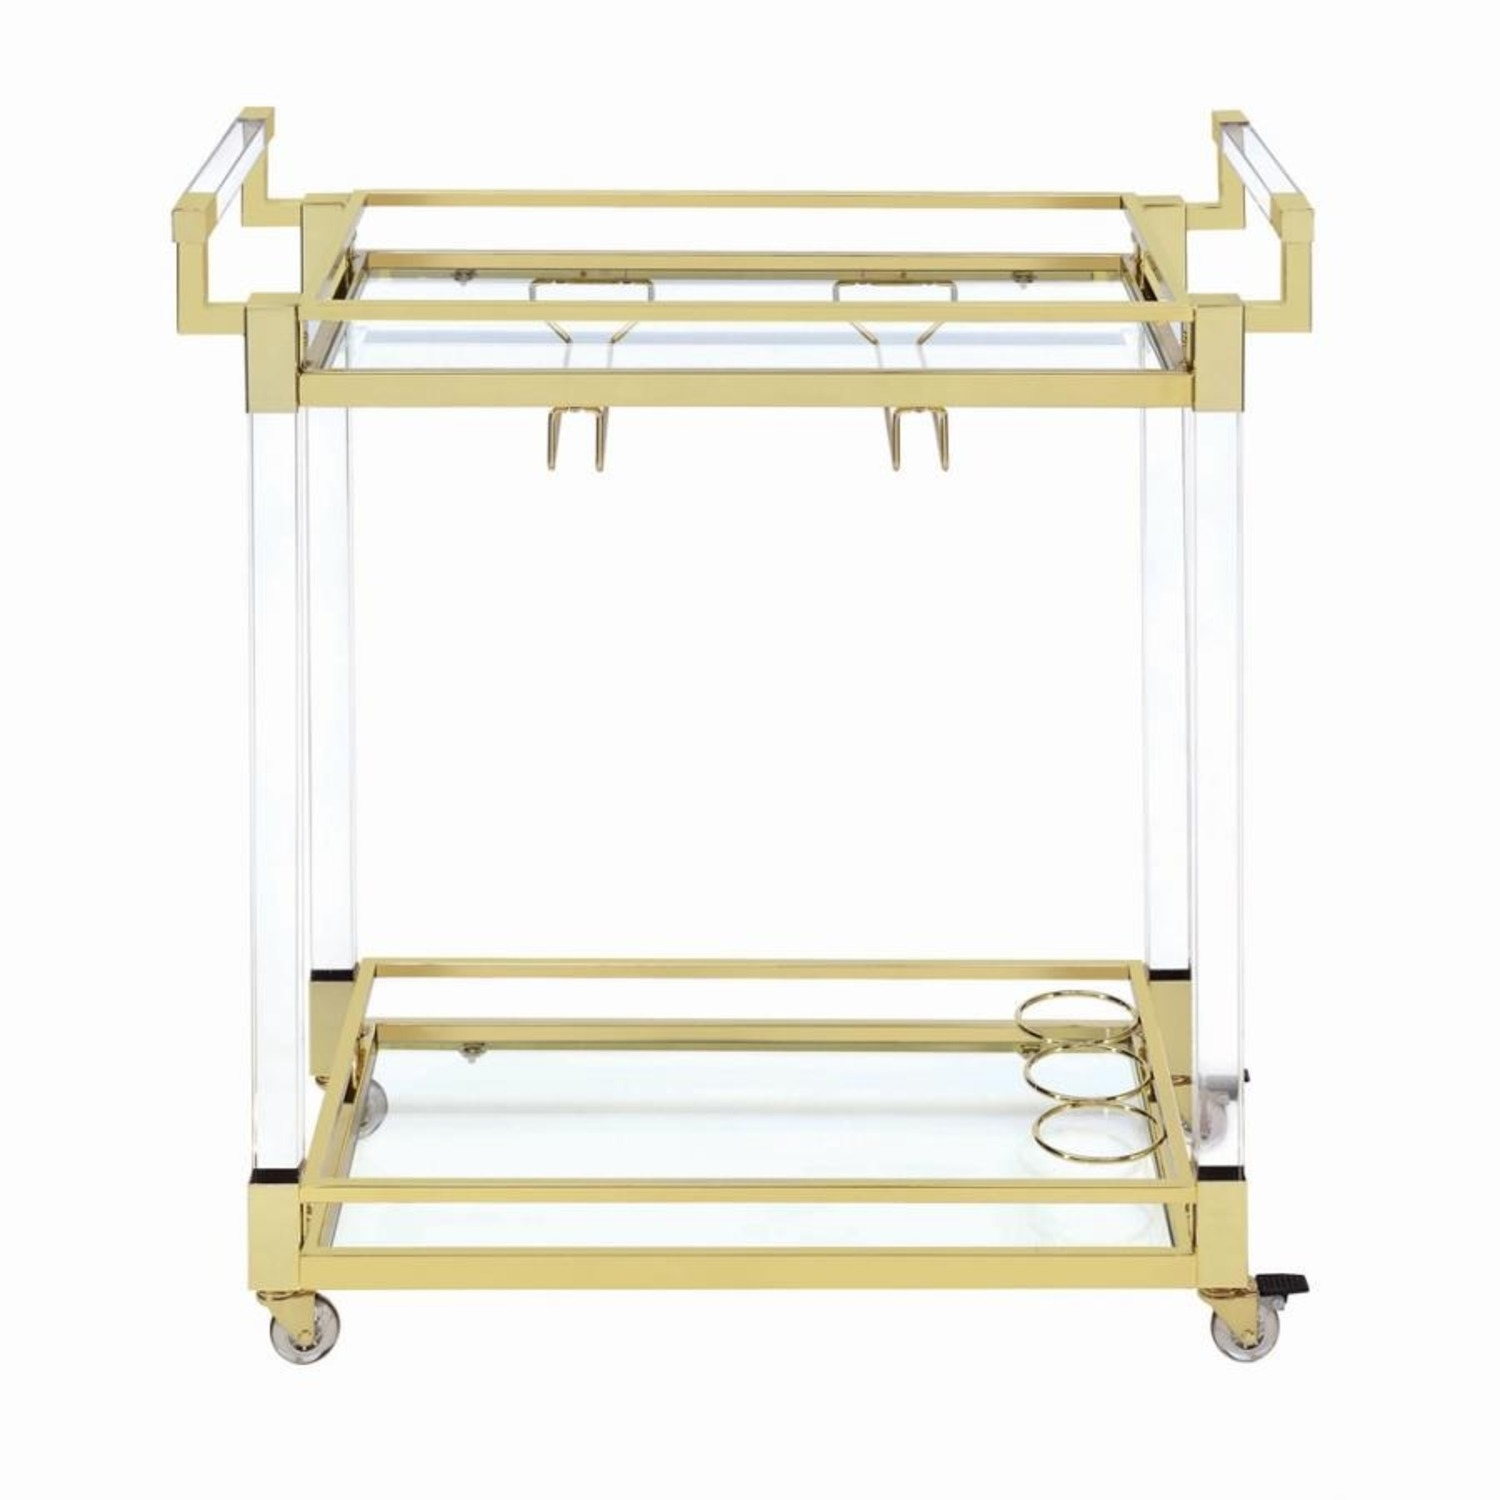 Serving Cart In Clear Acrylic & Brass Finish - image-1